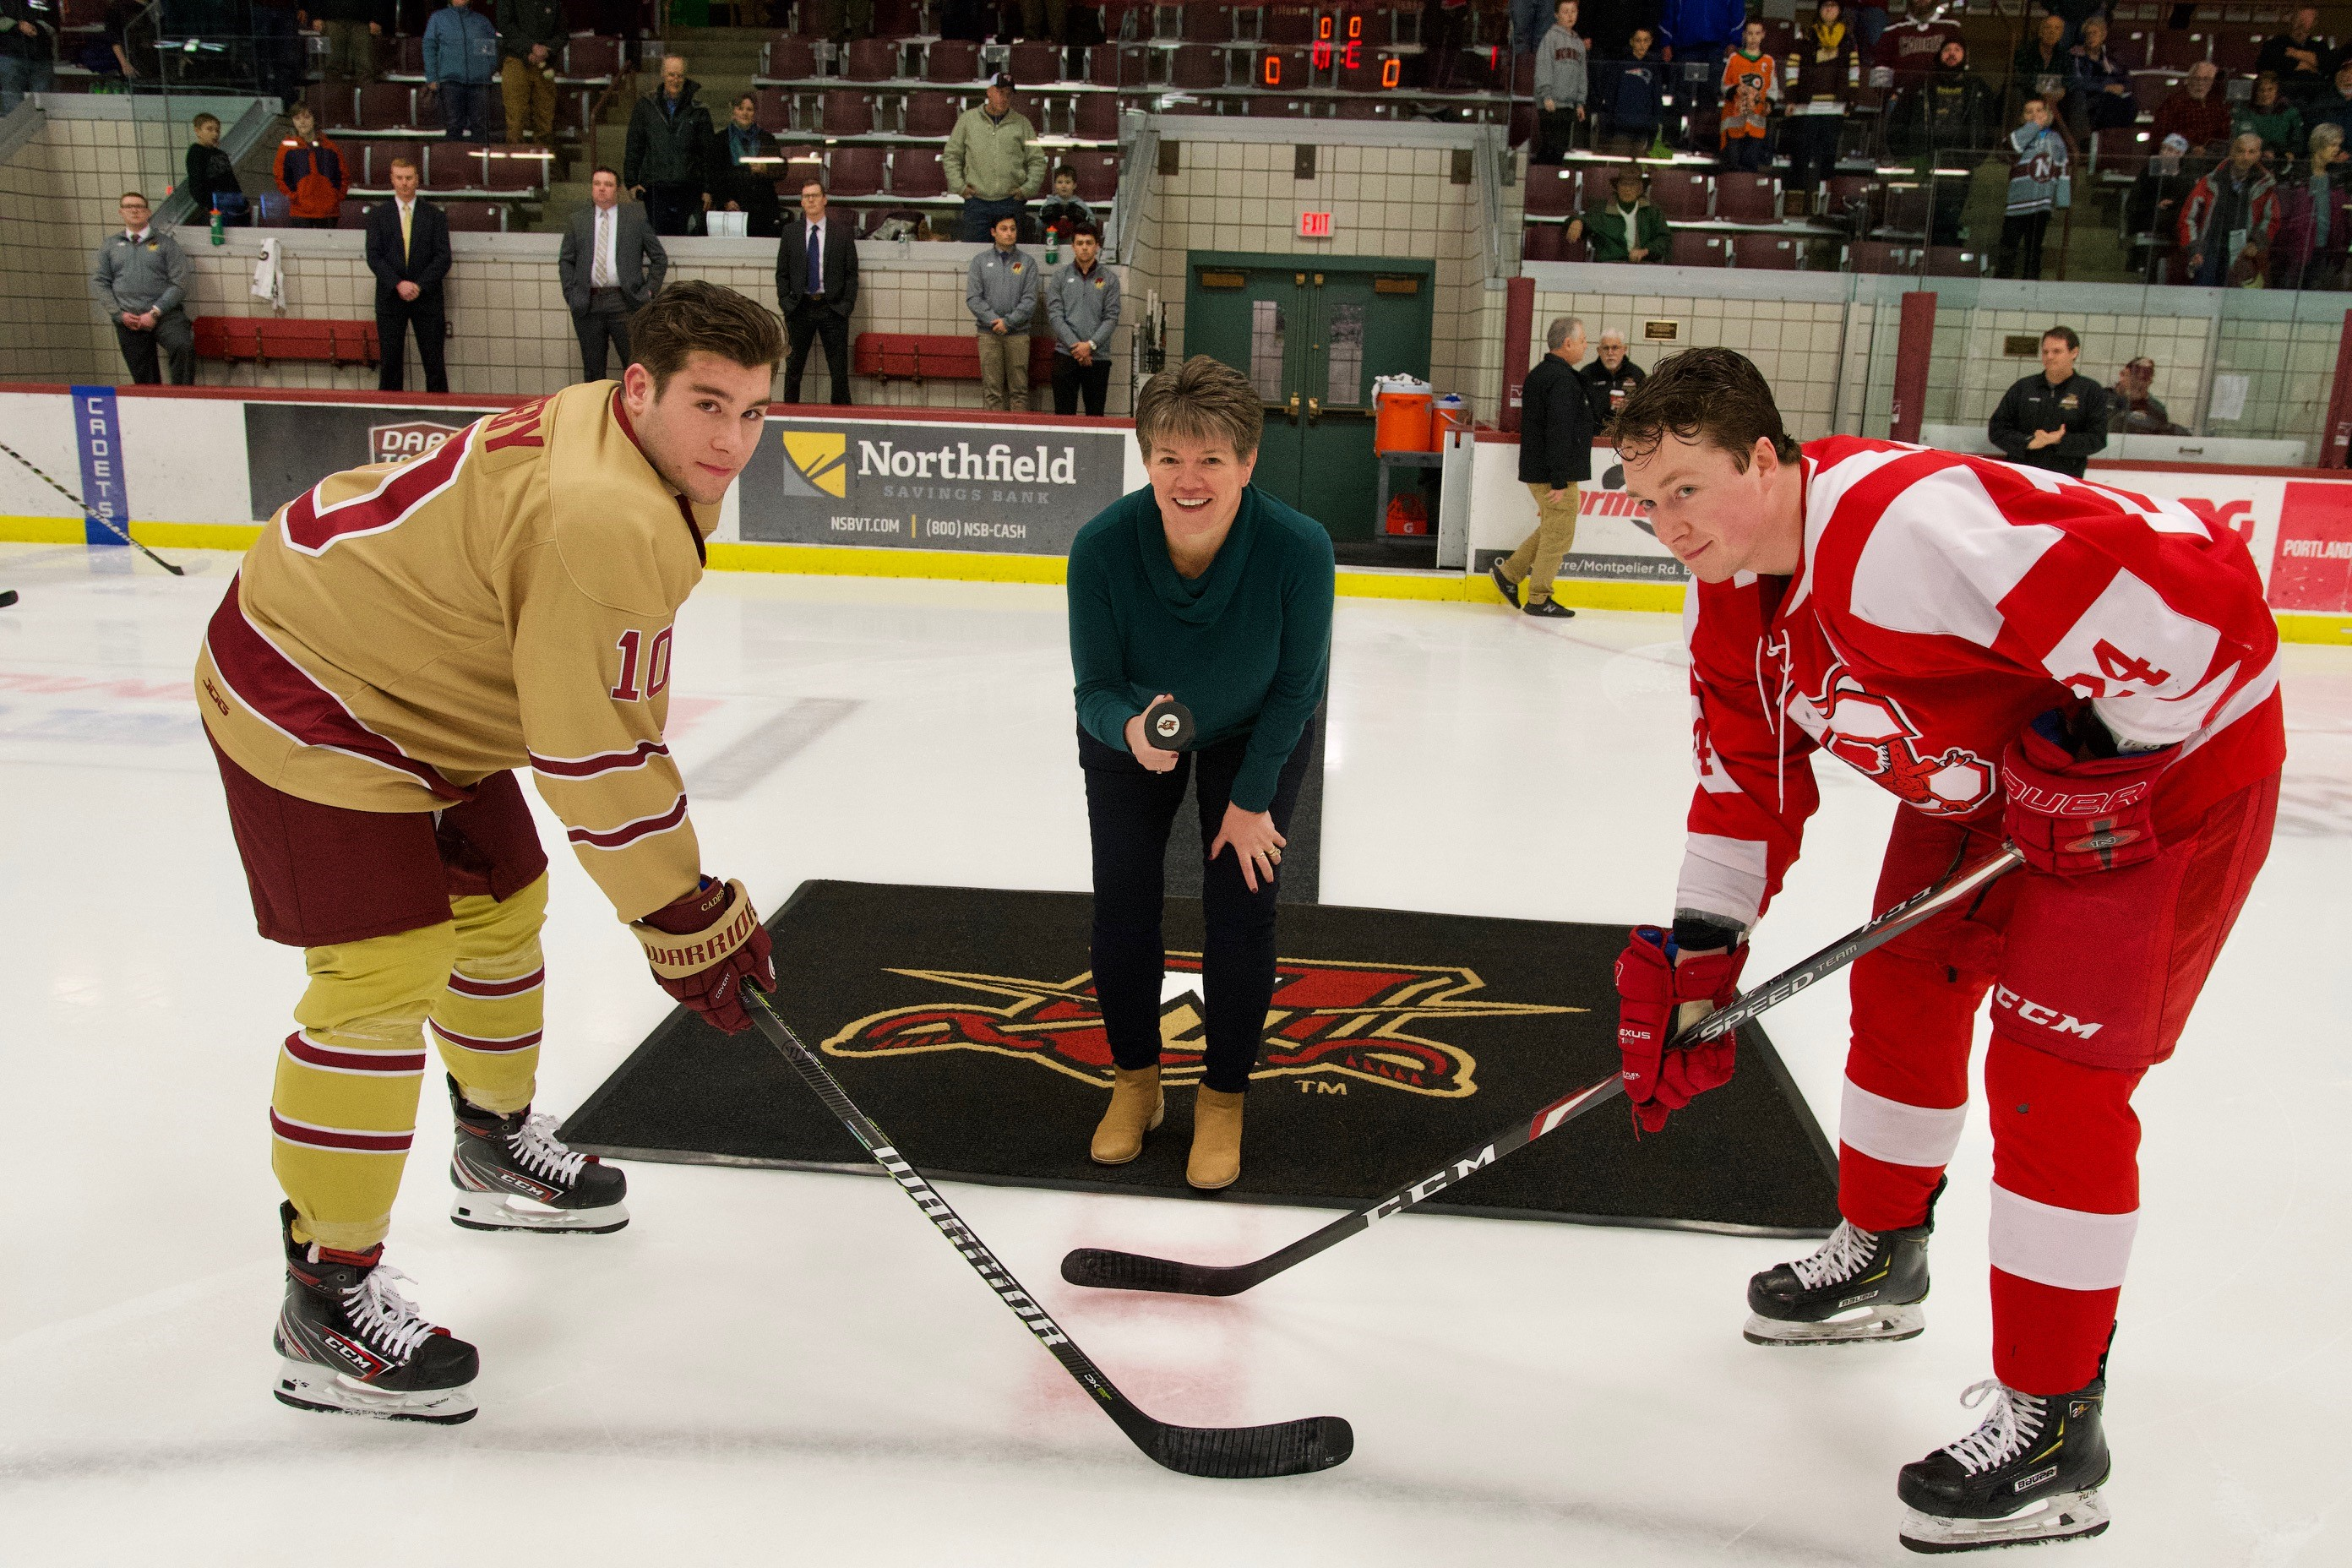 Championship Game Puck Drop